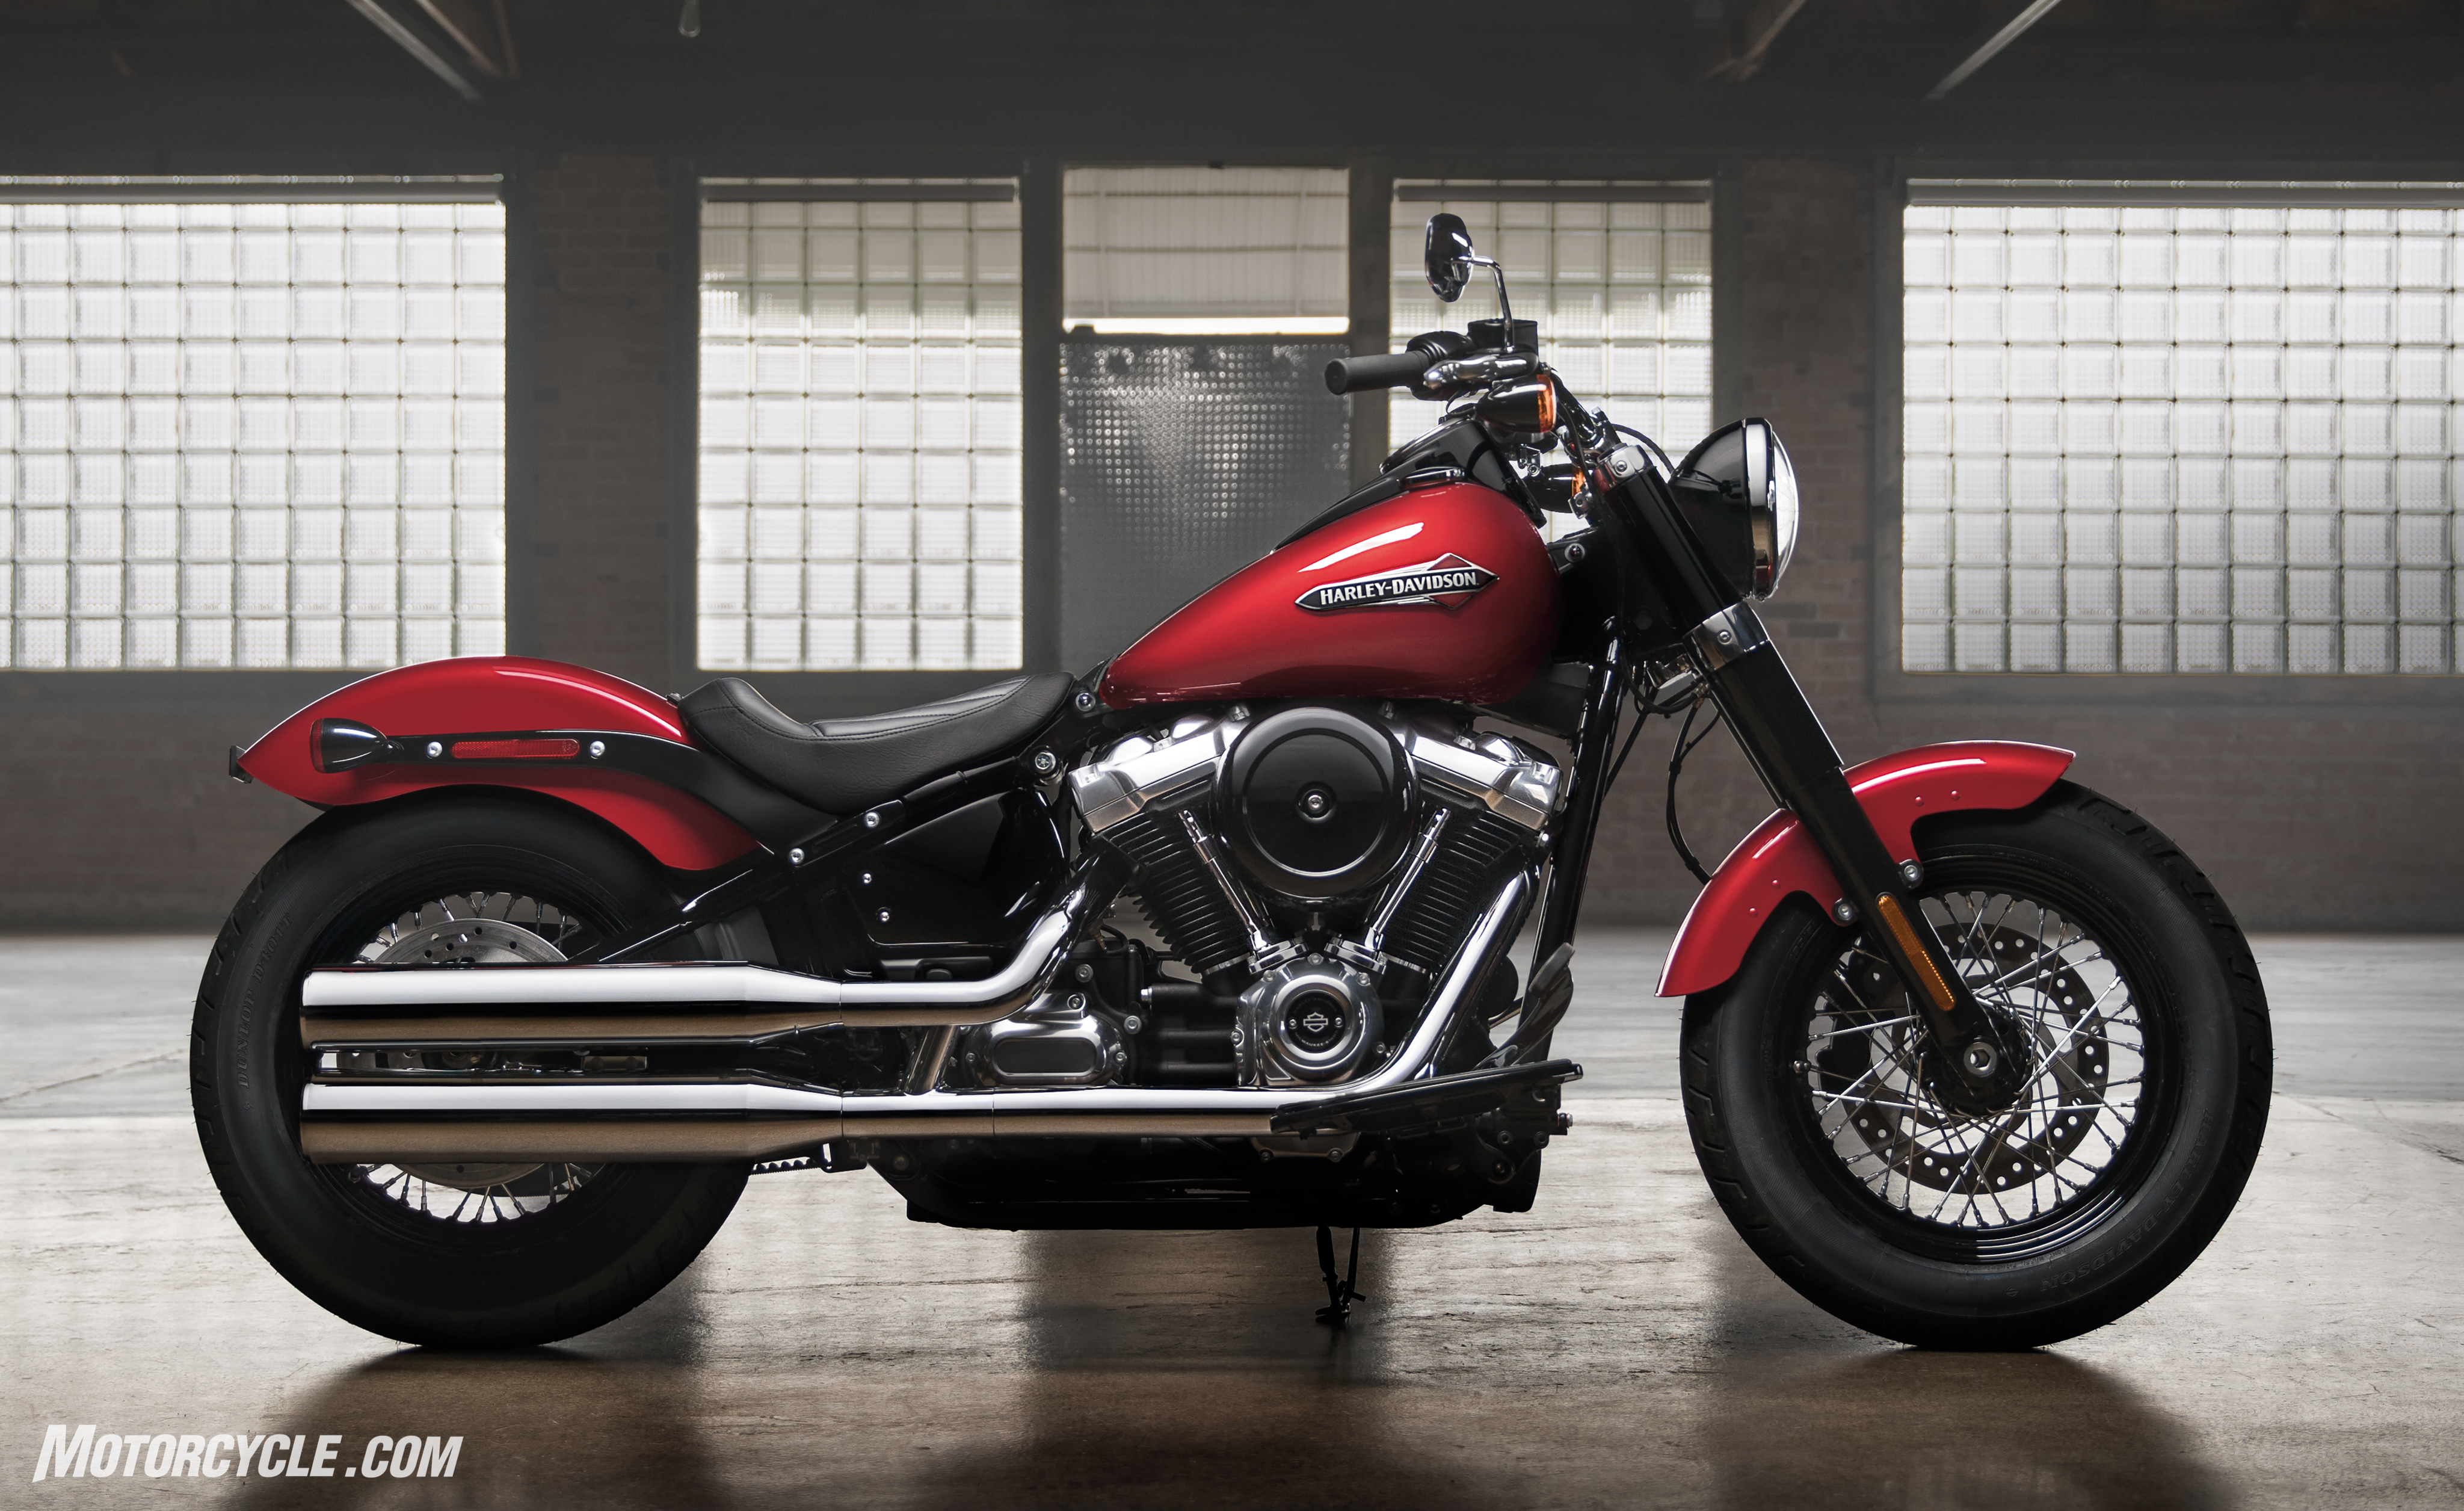 Harley Davidson: Harley-Davidson Introduces All New 2018 Softail Line